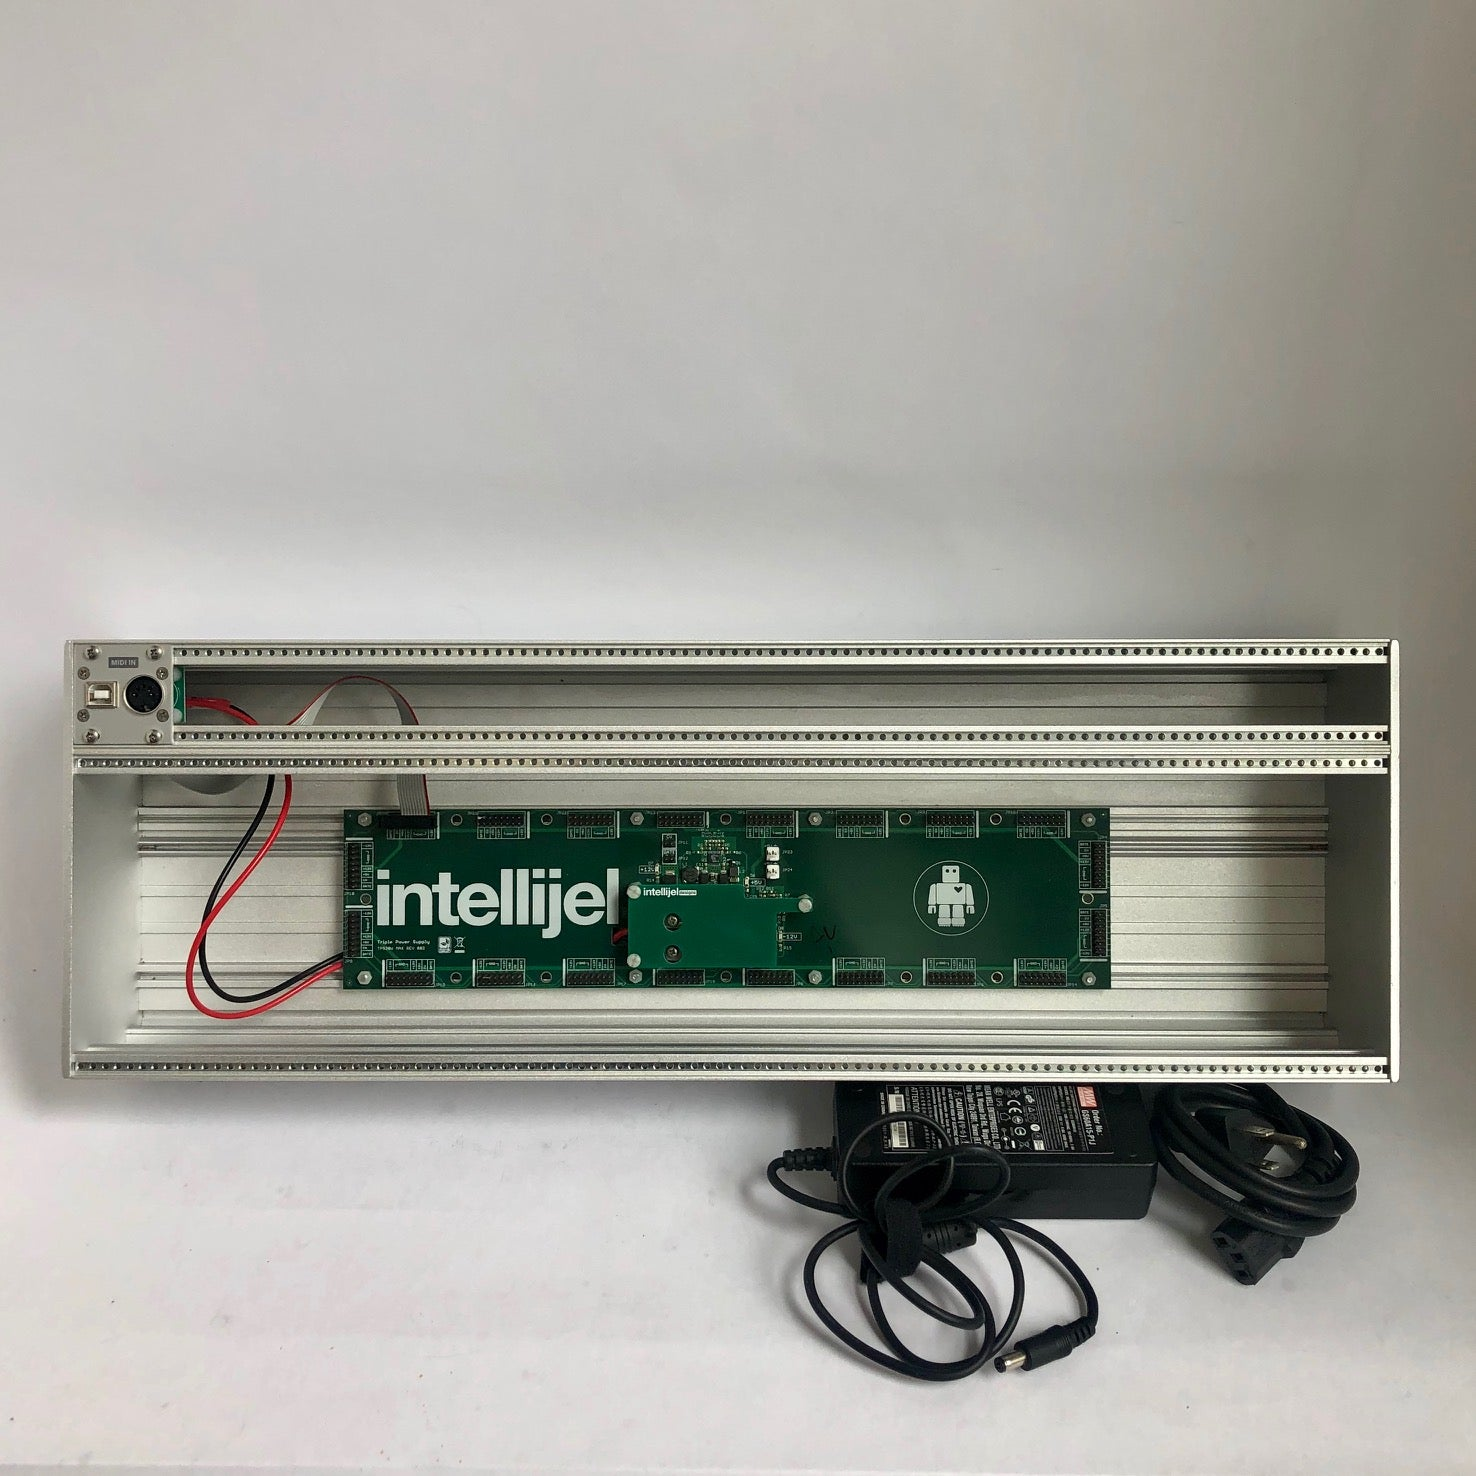 Intellijel 4U x 104HP TPS30W MAX Powered Case